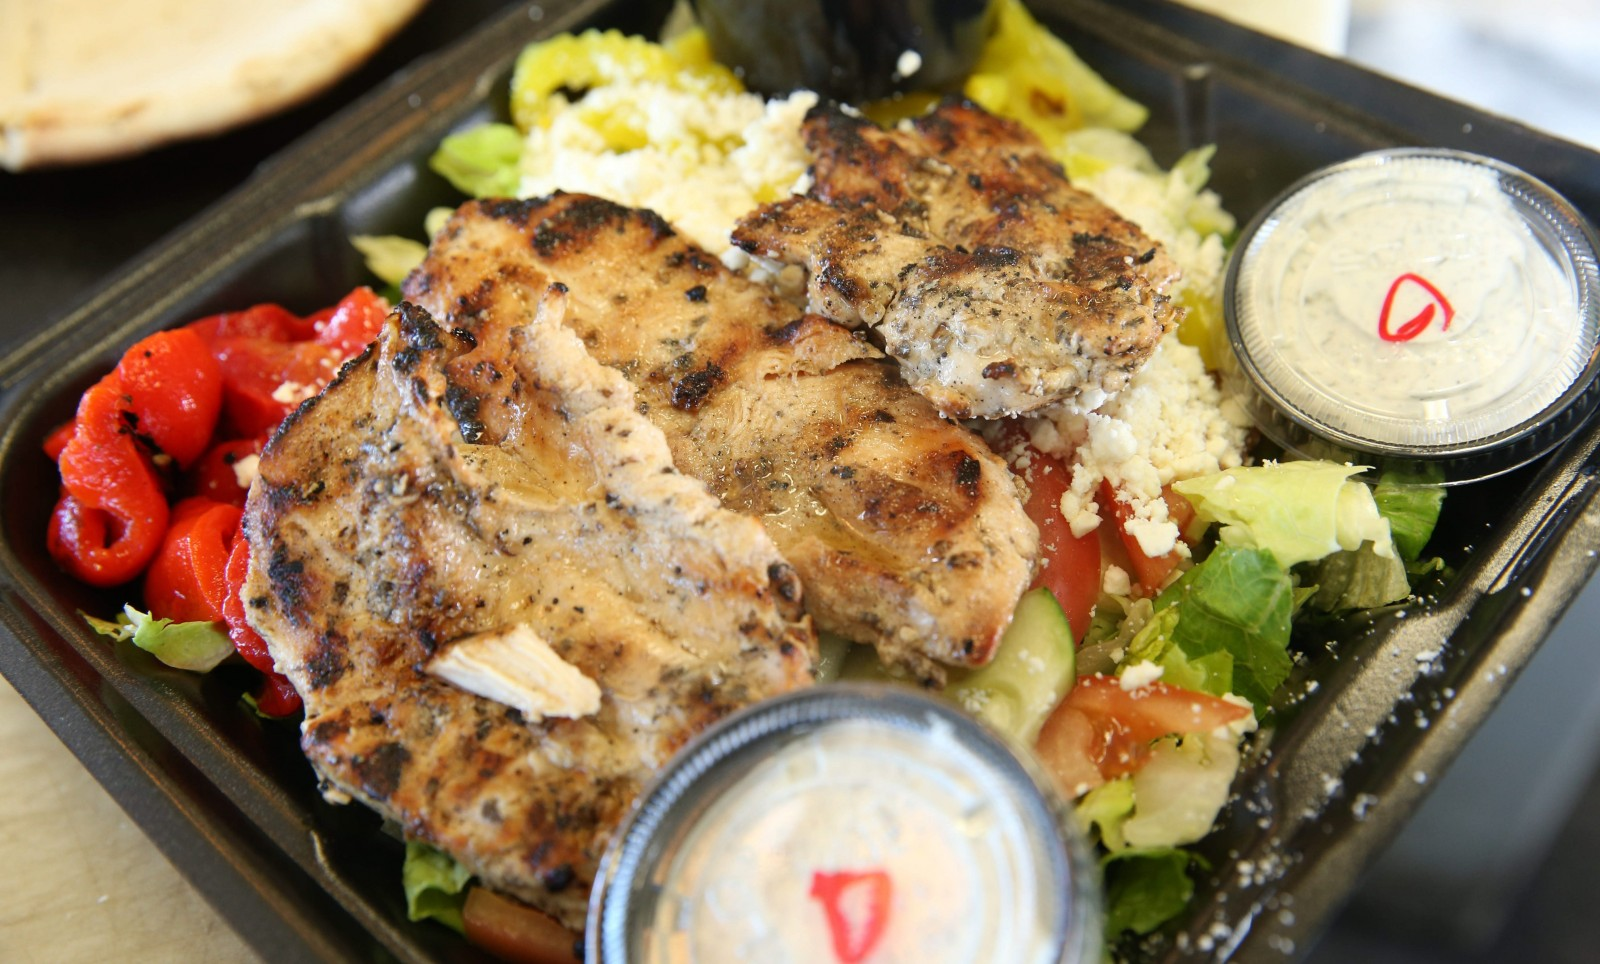 The open chicken souvlaki from Pita Gourmet on Transit Road is a health-conscious choice while shopping. (Sharon Cantillon/Buffalo News file photo)